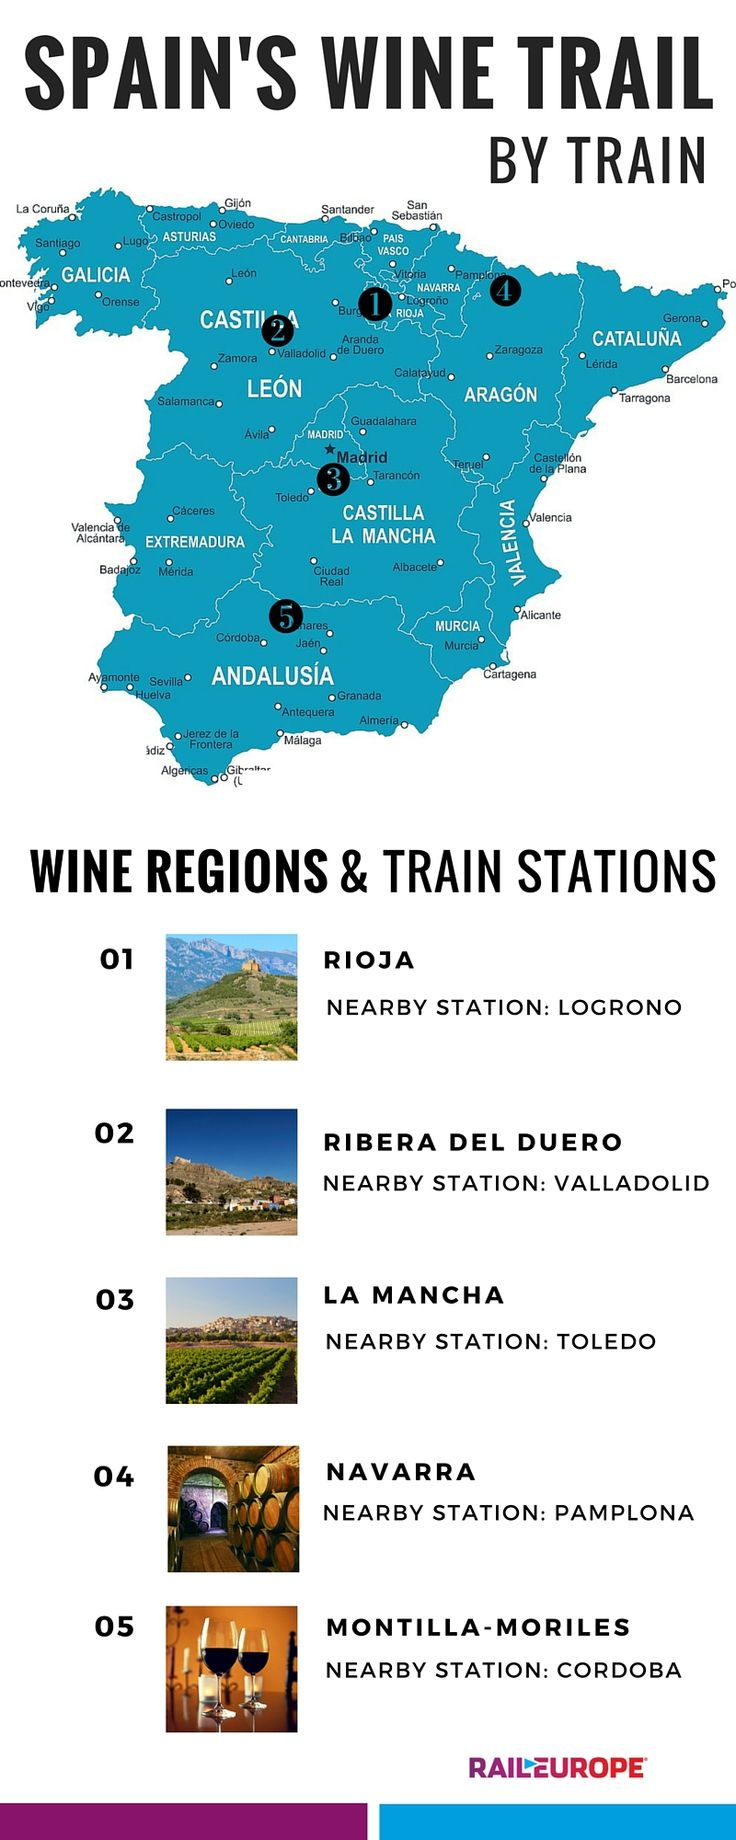 Ever wanted to take a wine trip through #Spain? Here are some of the best Spanish #wine regions and nearby train stations